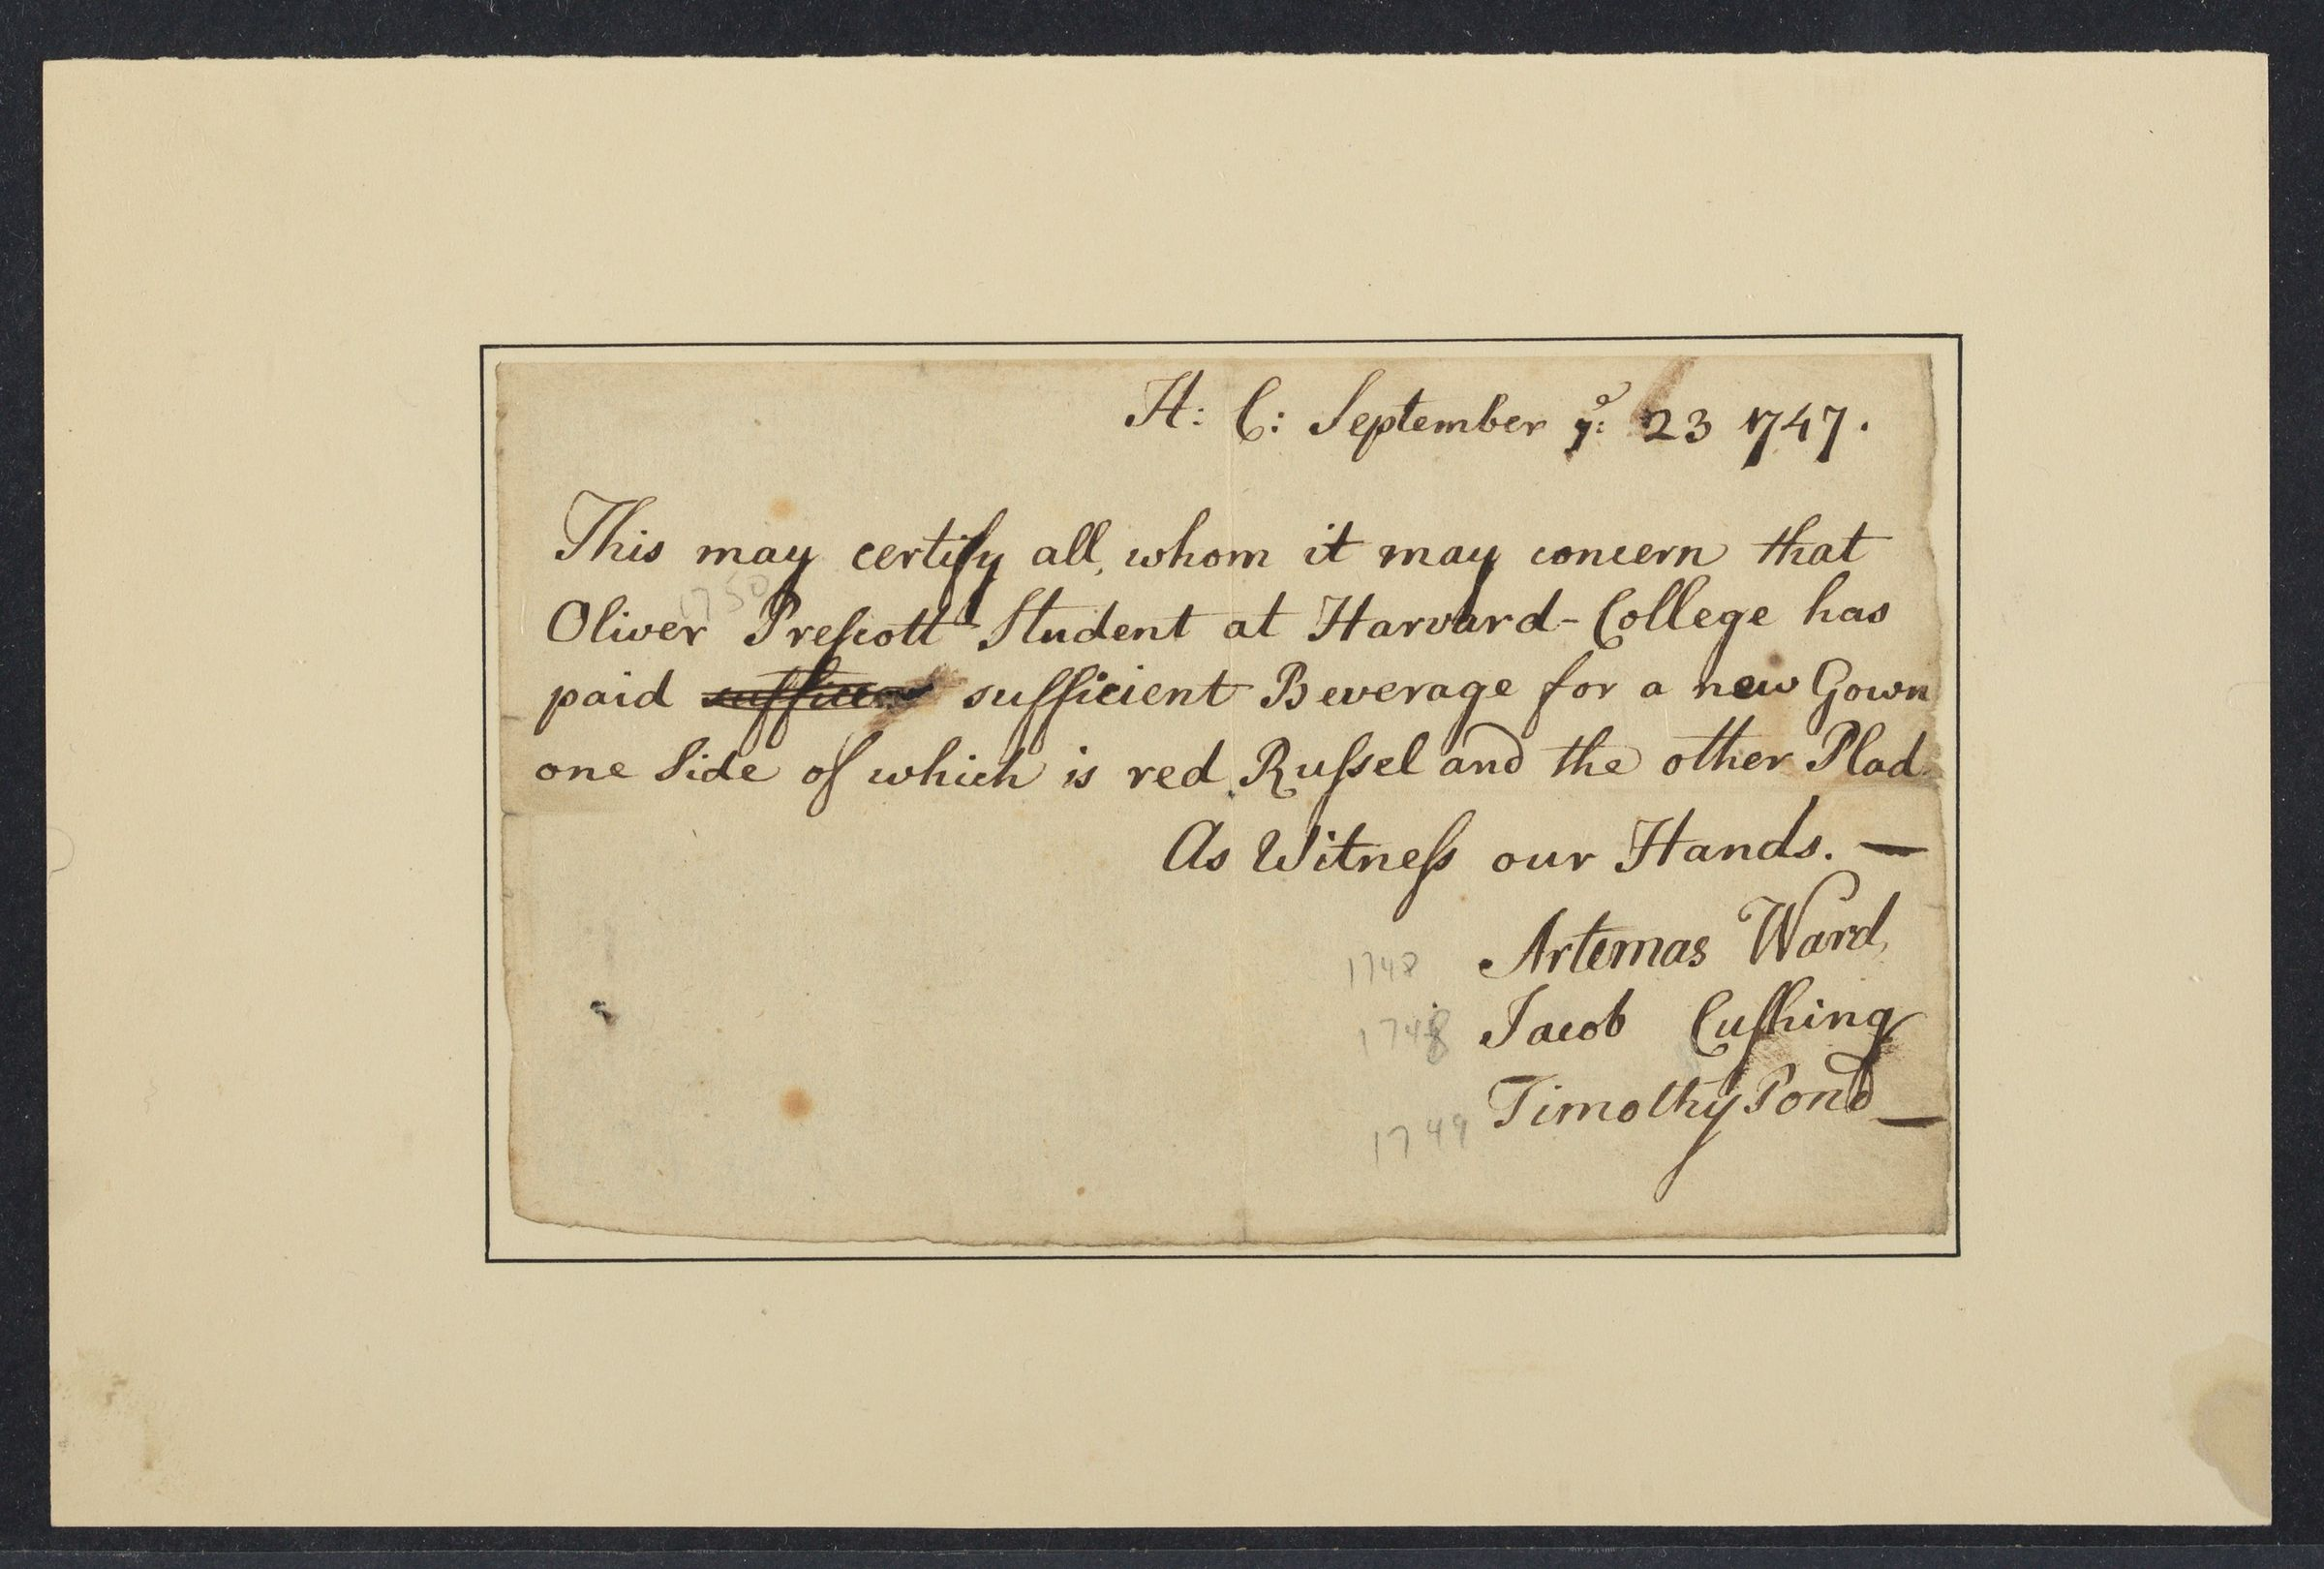 Certification of payment from Oliver Prescott, 1747 September 23